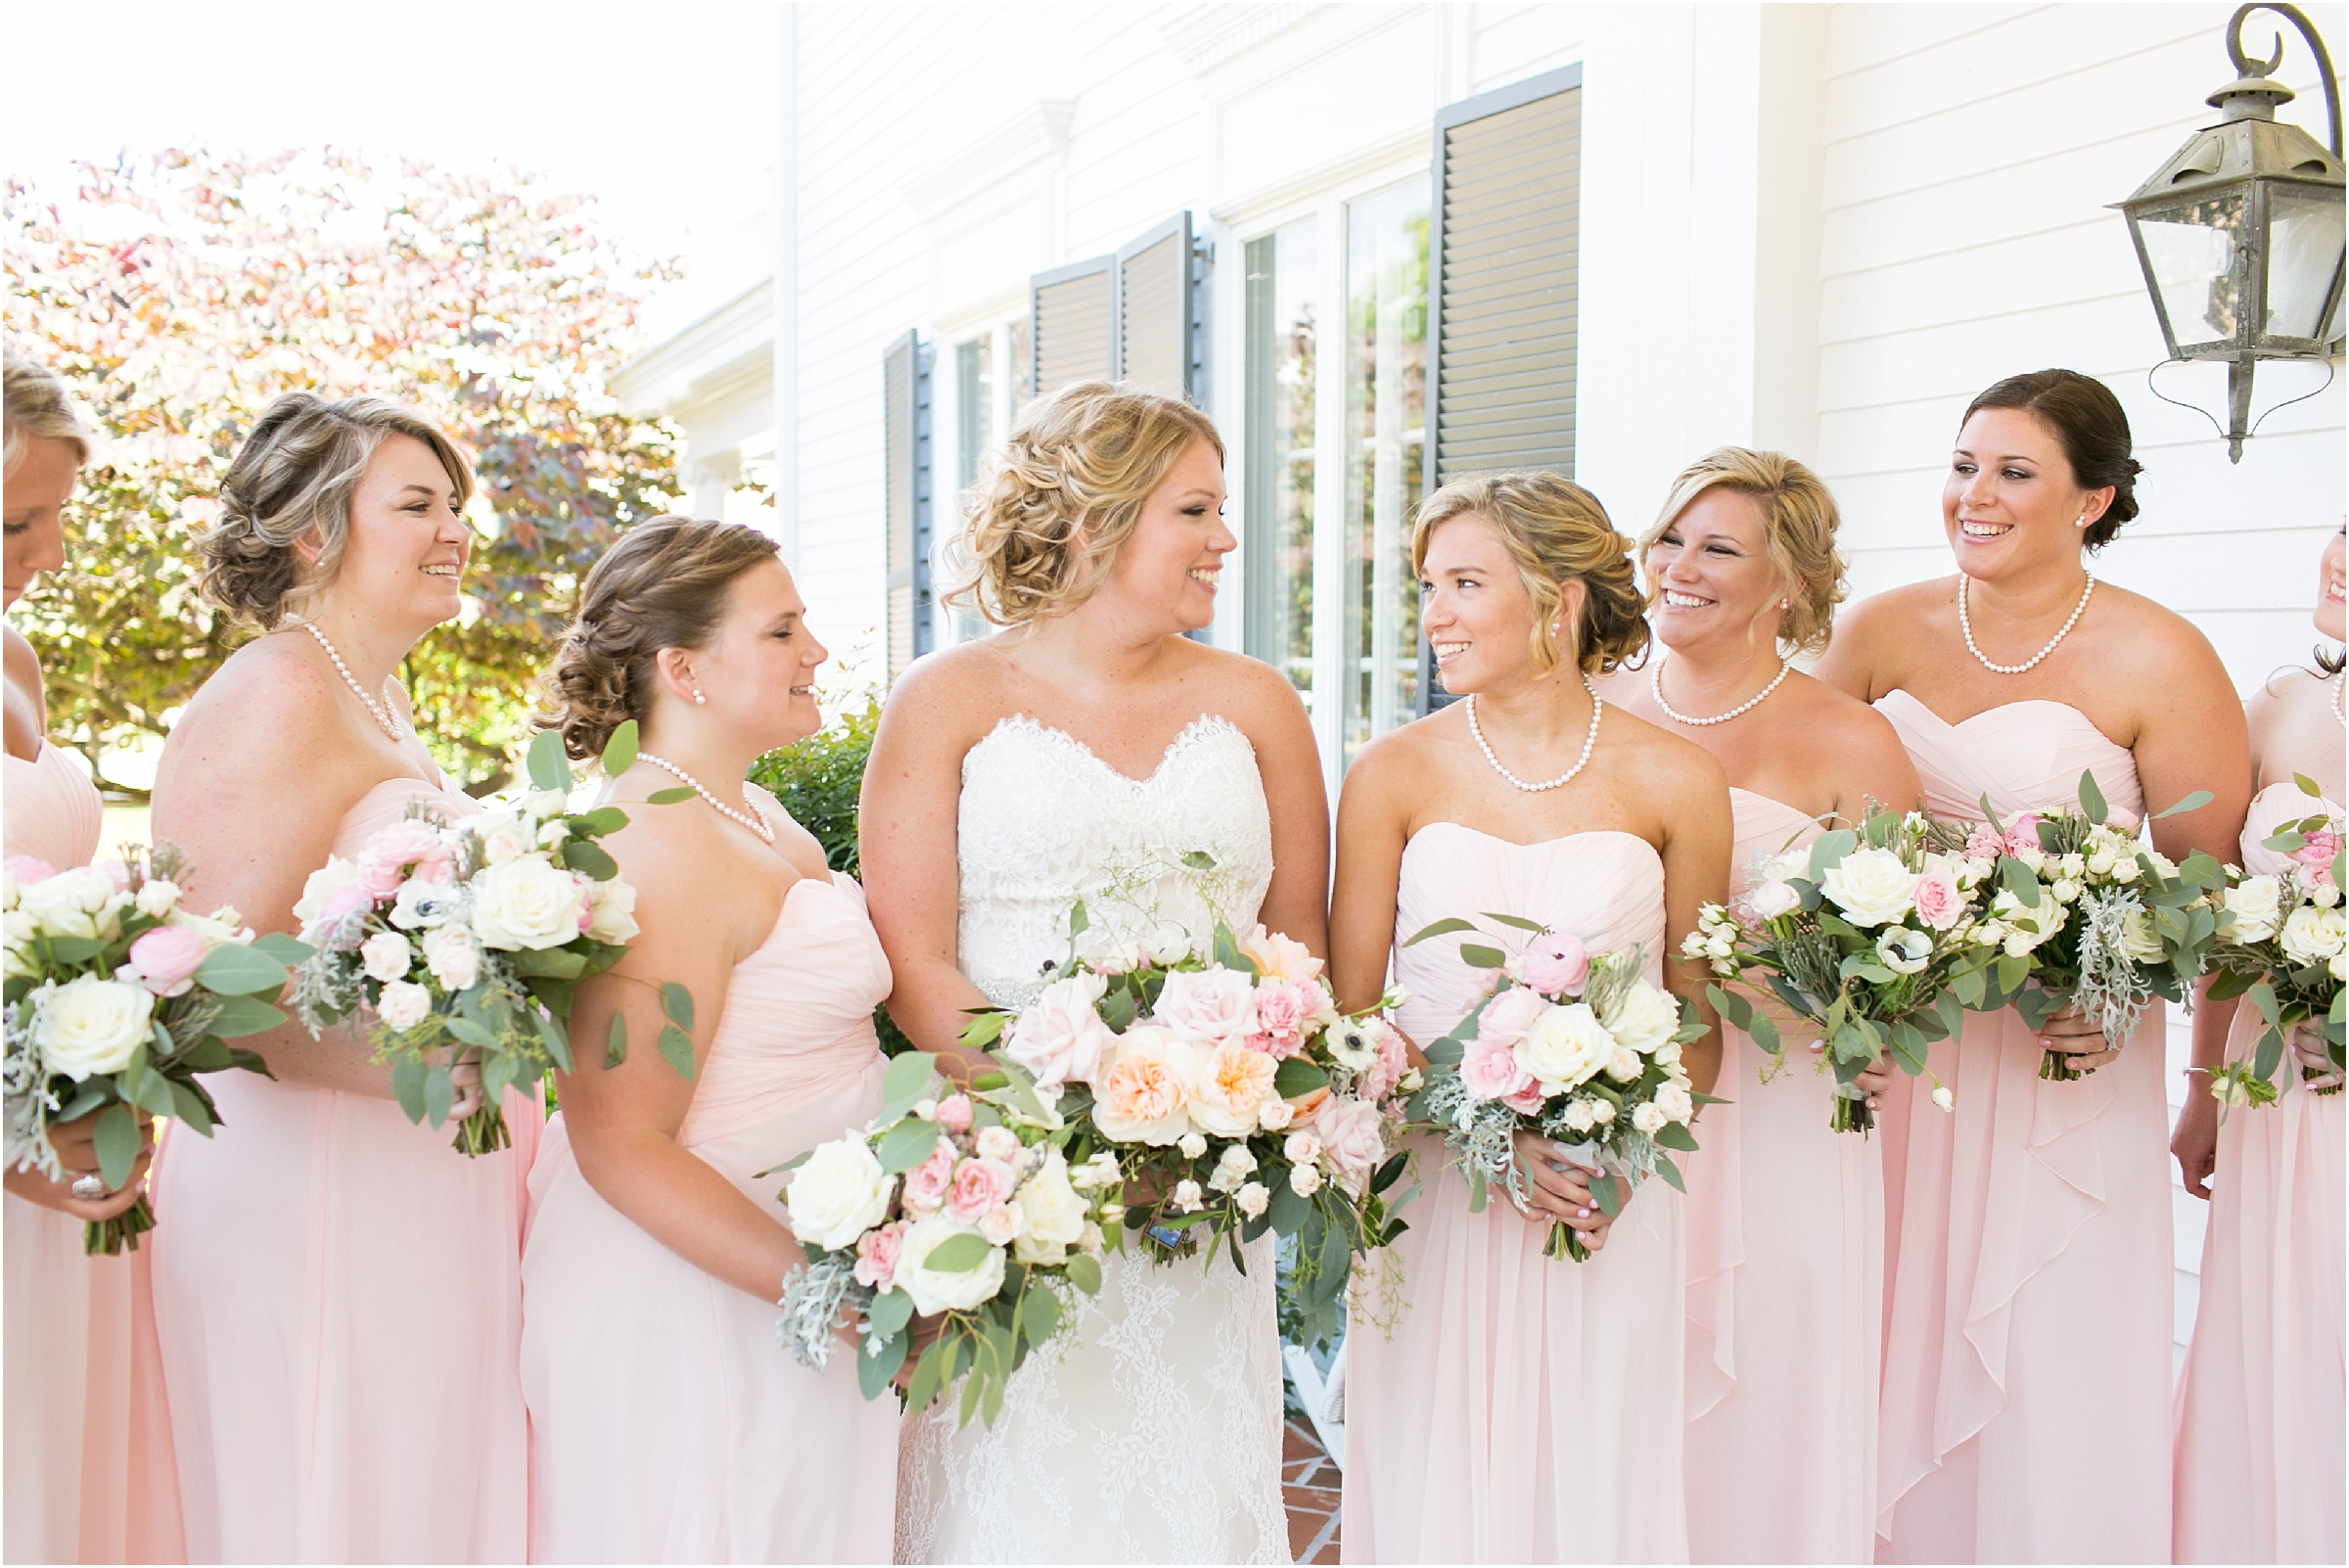 Warner hall wedding